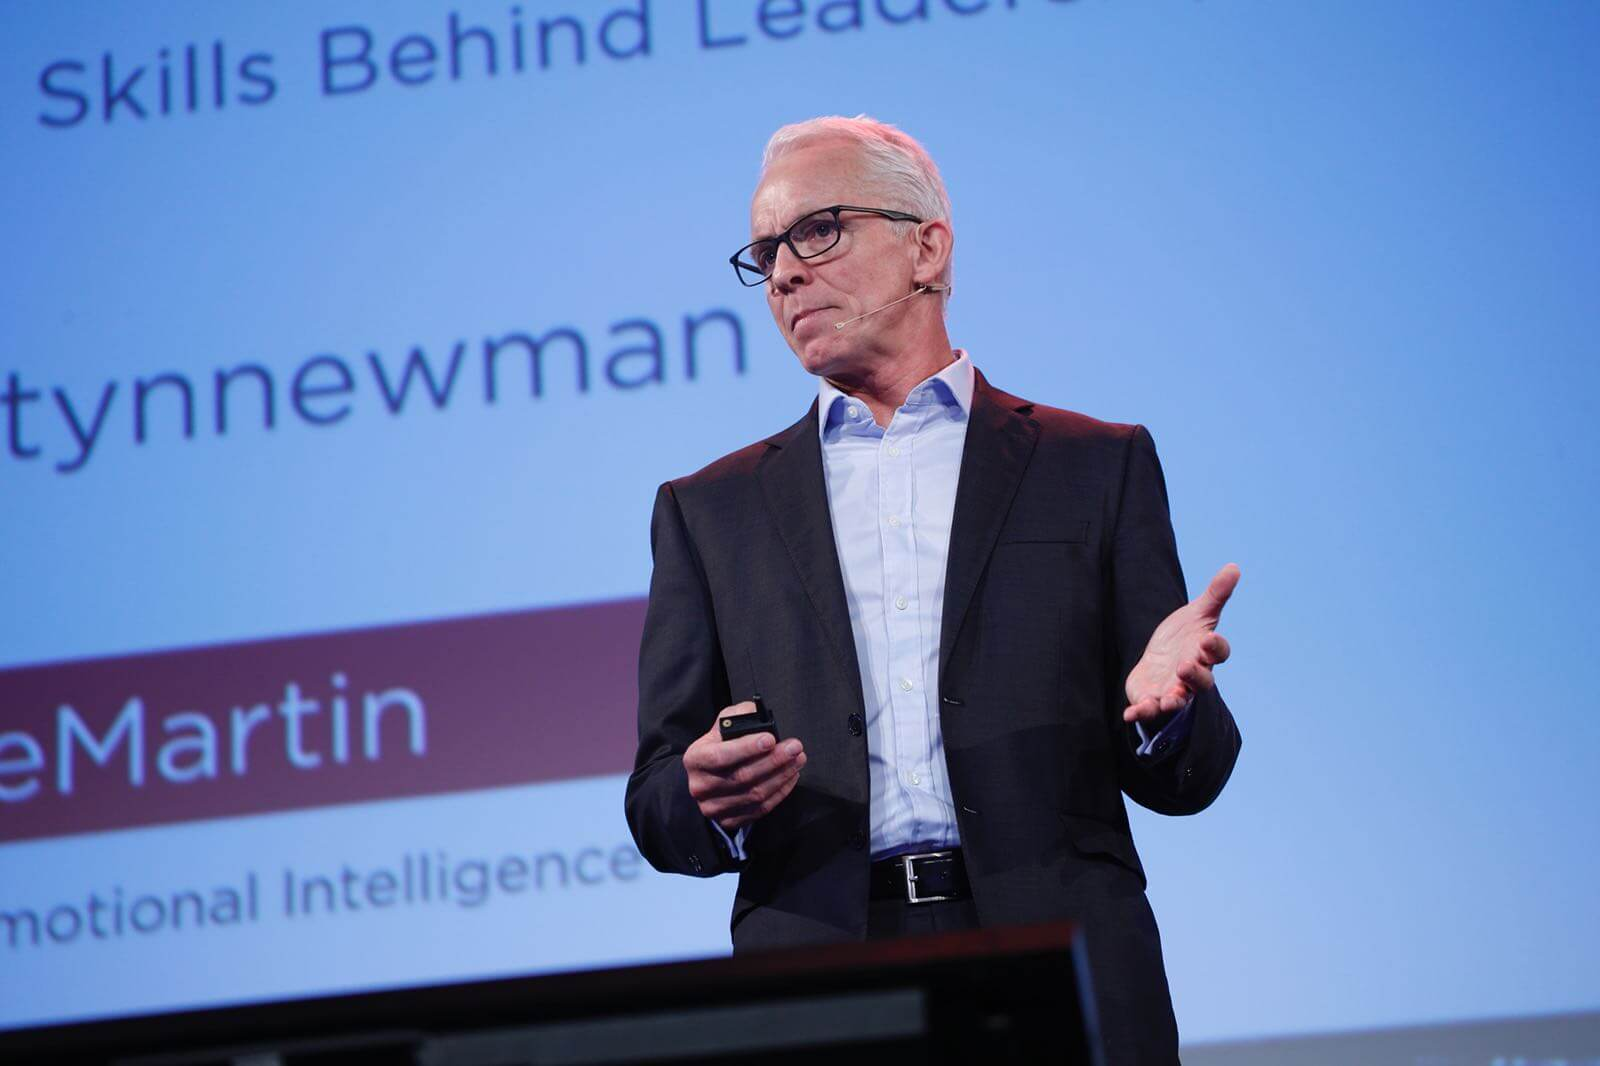 What are the critical emotional intelligence skills that are highly predictive of leadership performance?